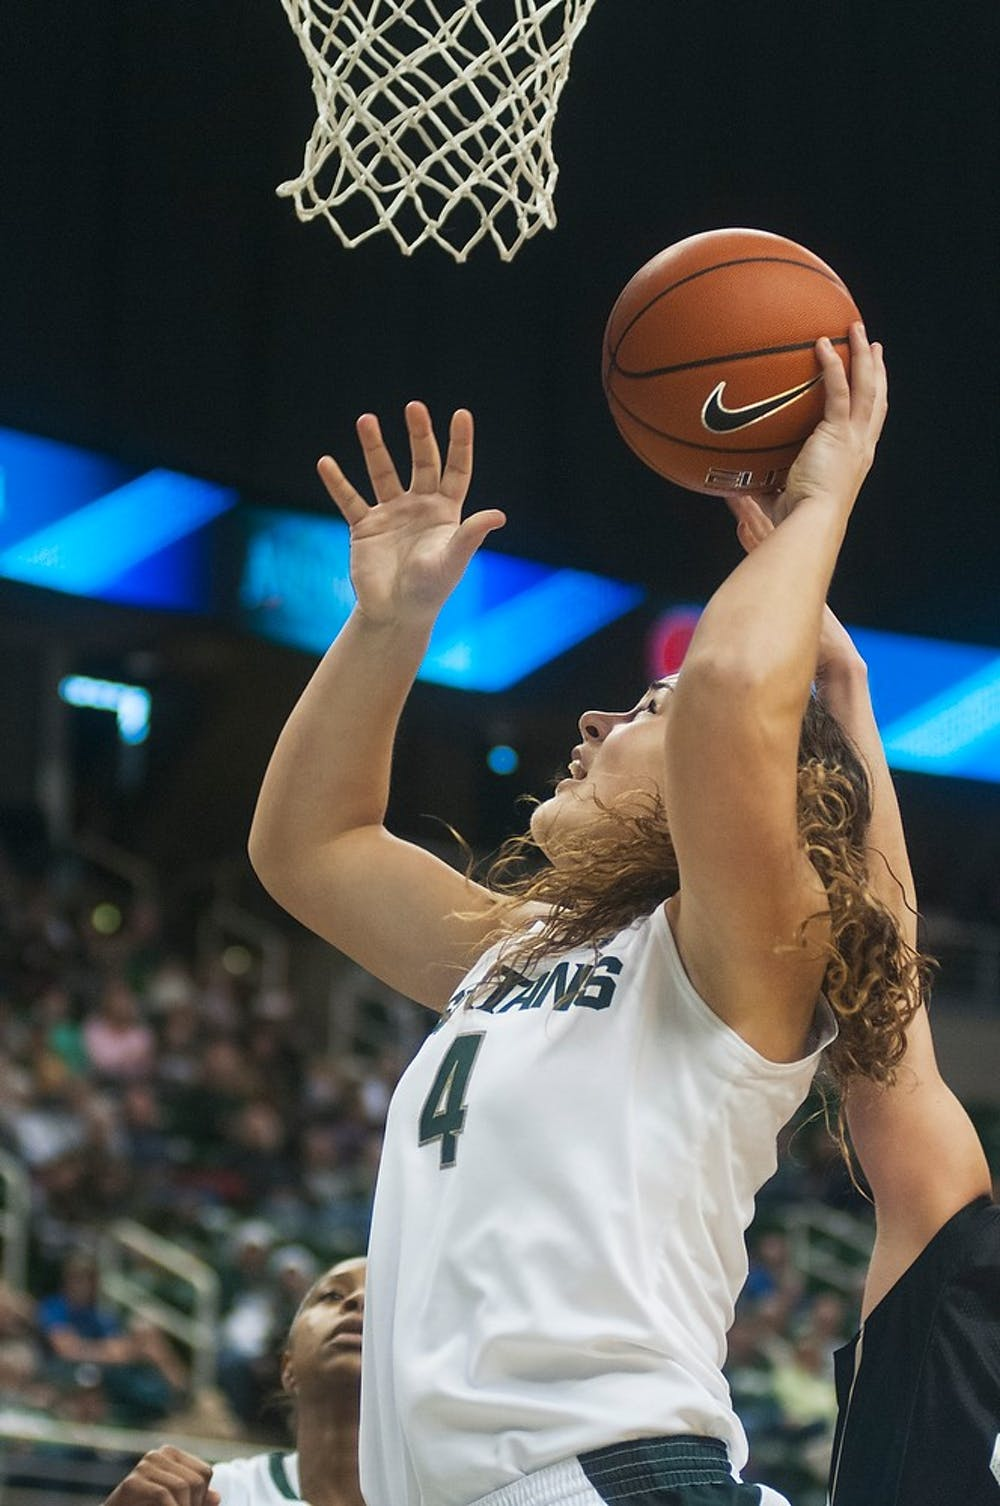 <p>Junior center Jasmine Hines goes up with a rebound during the game against Oakland on Dec. 15, 2013, at Breslin Center. The Spartans defeated the Grizzlies, 80-62. Danyelle Morrow/The State News</p>